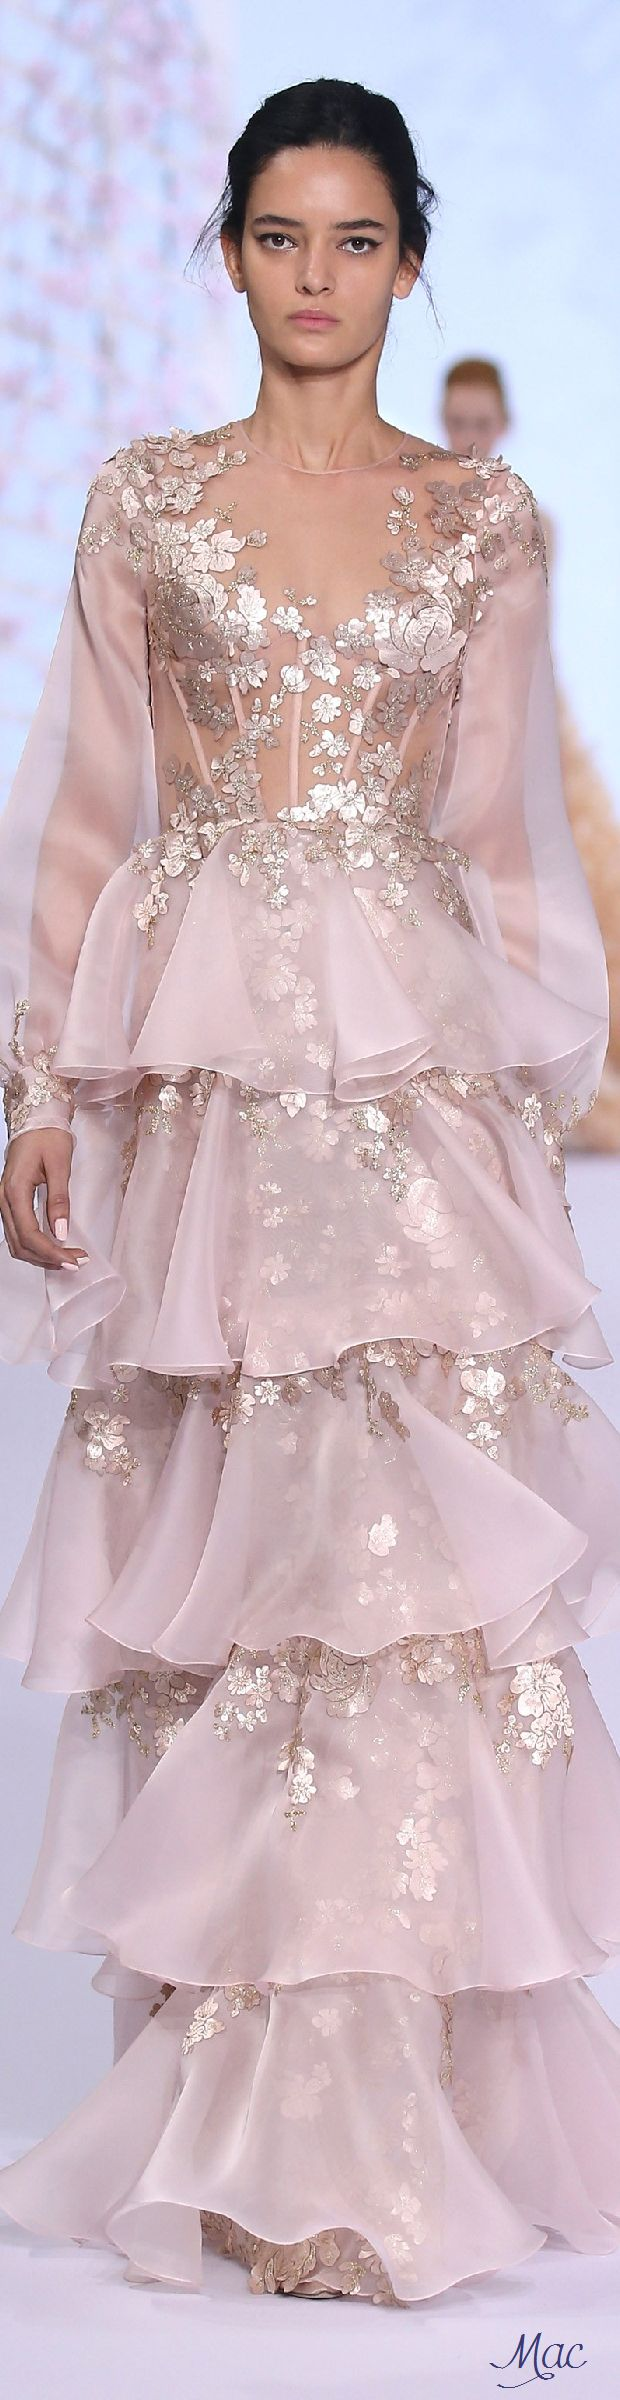 Ethereal ~ Spring 2016 Haute Couture Ralph & Russo www.aromatiqueessentials.com.au